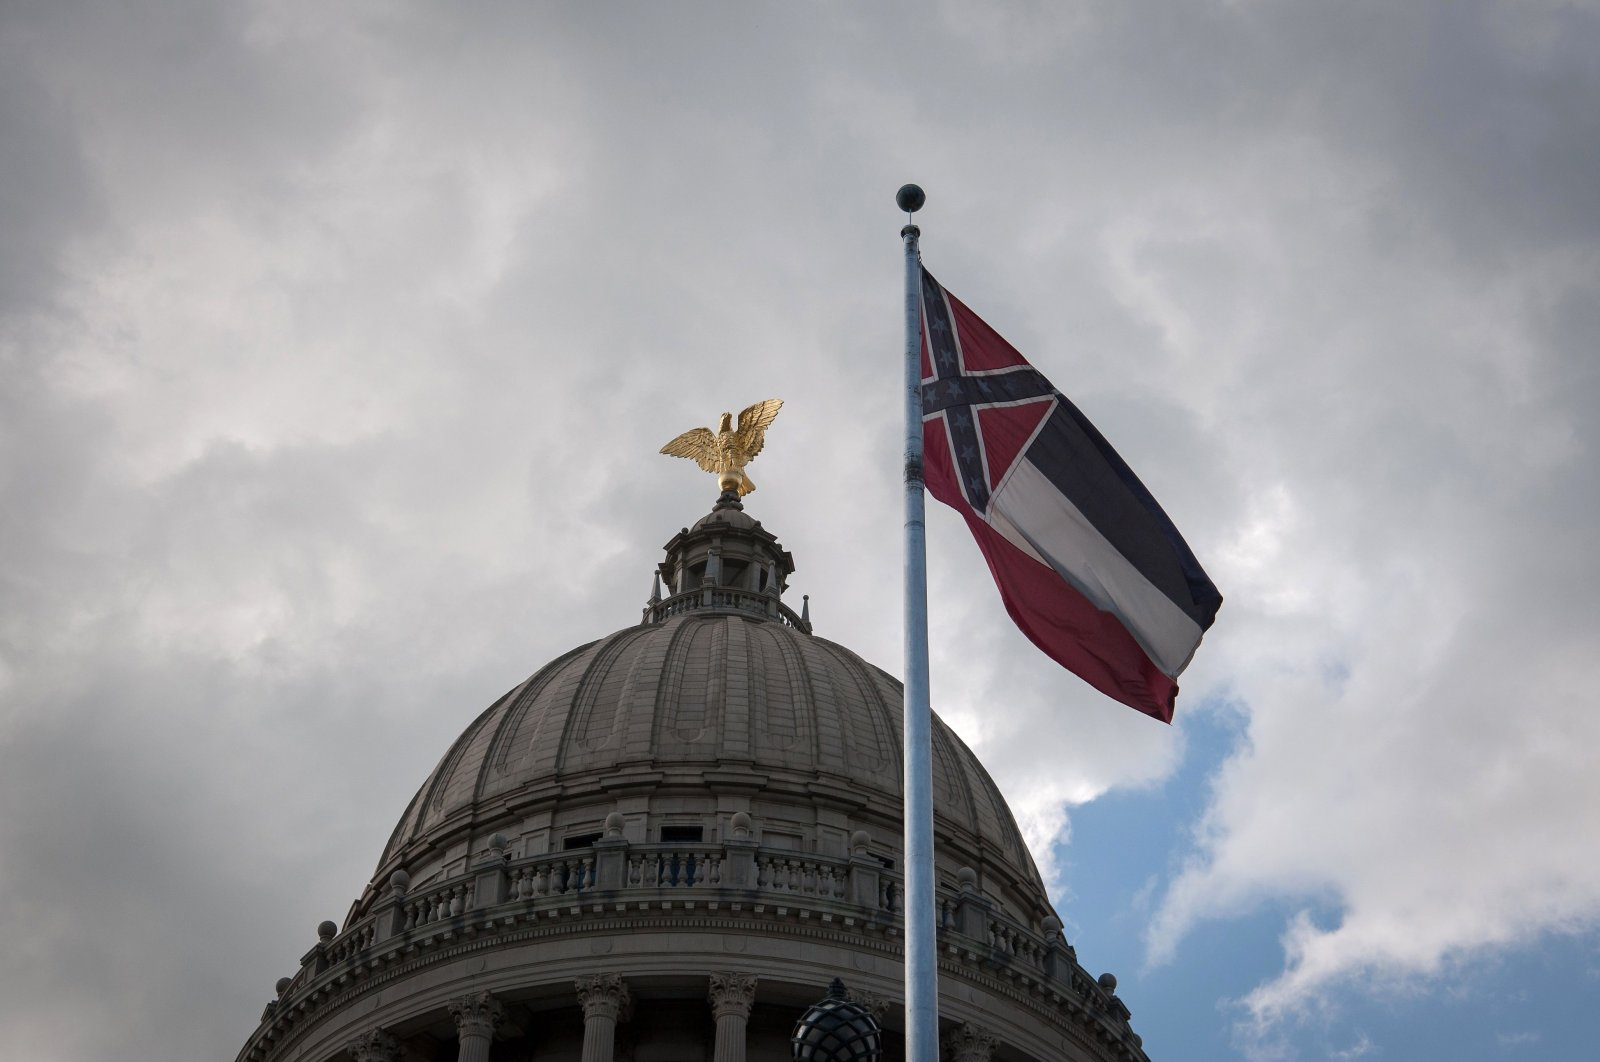 The Mississippi state flag flies in front of the Mississippi State Capitol building in Jackson, Mississippi, June 28, 2020. (AFP Photo)